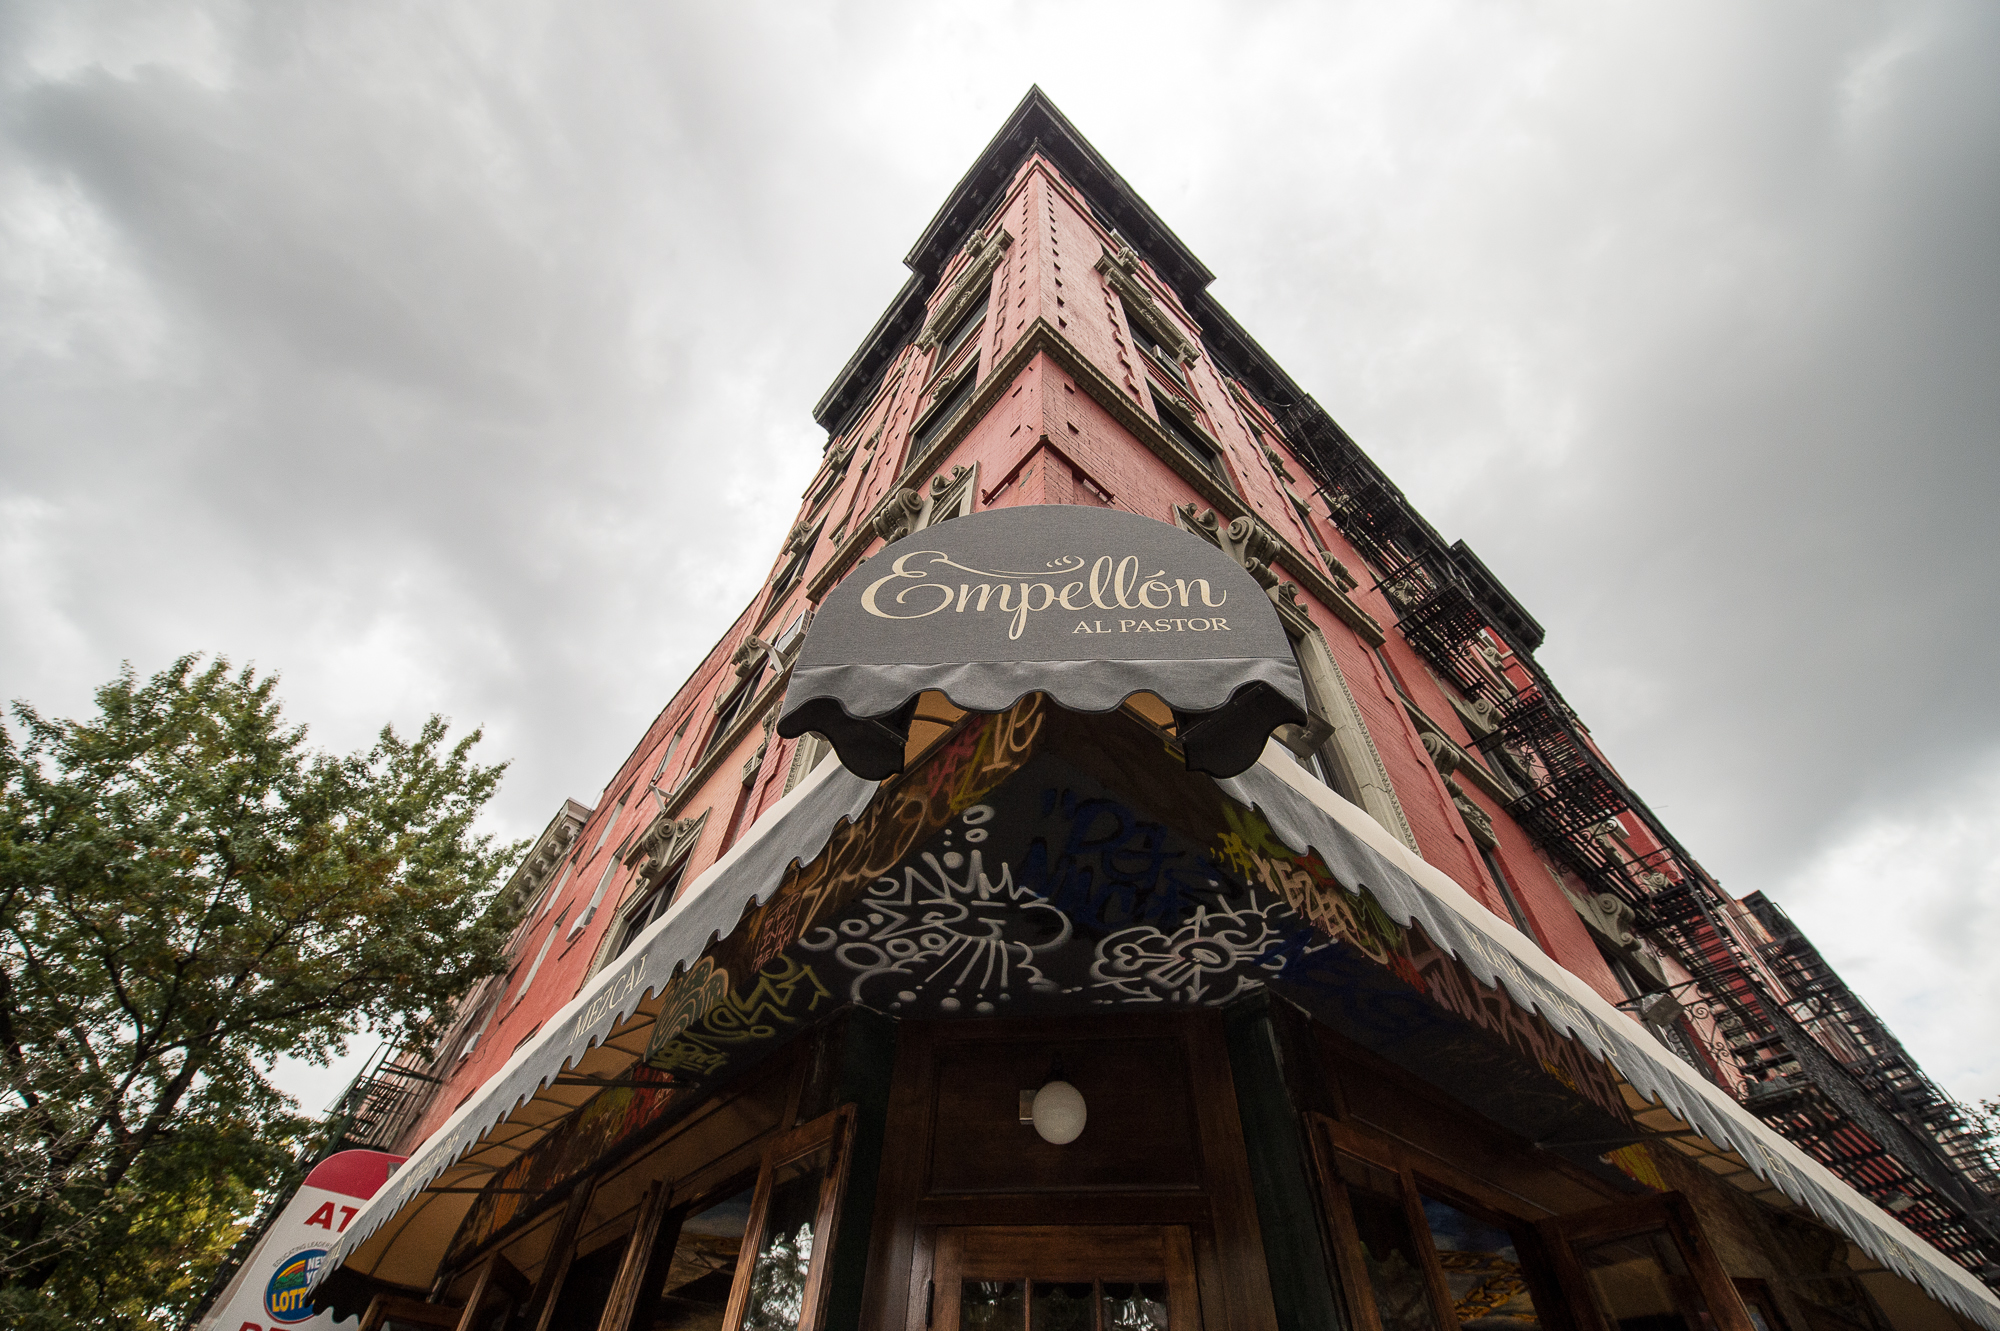 [Empellon Al Pastor, a fine place to grab lunch on this late summer day.]